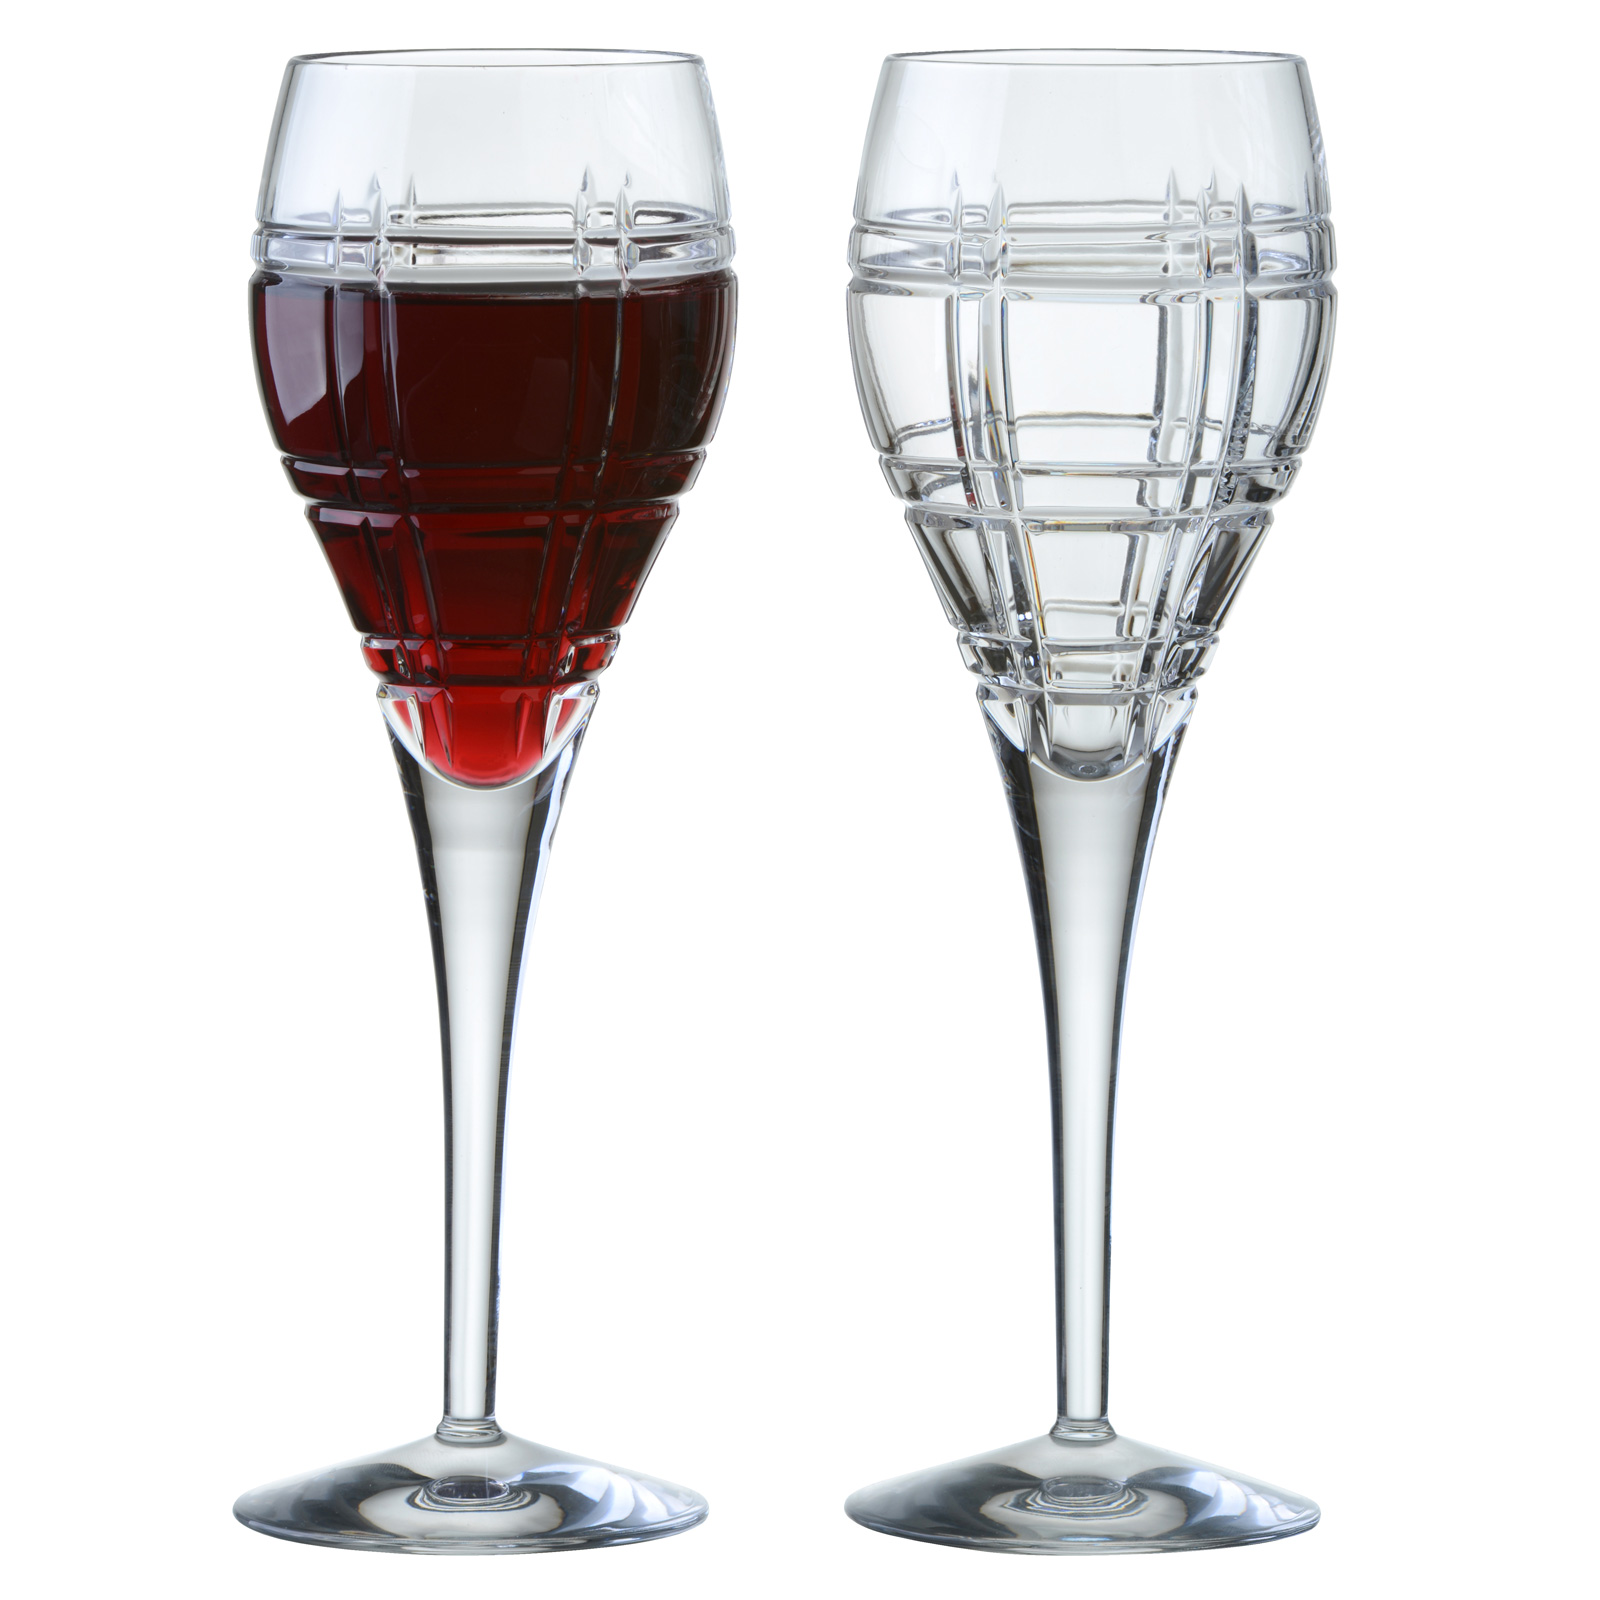 Set of 2 Latitude Wine Glasses